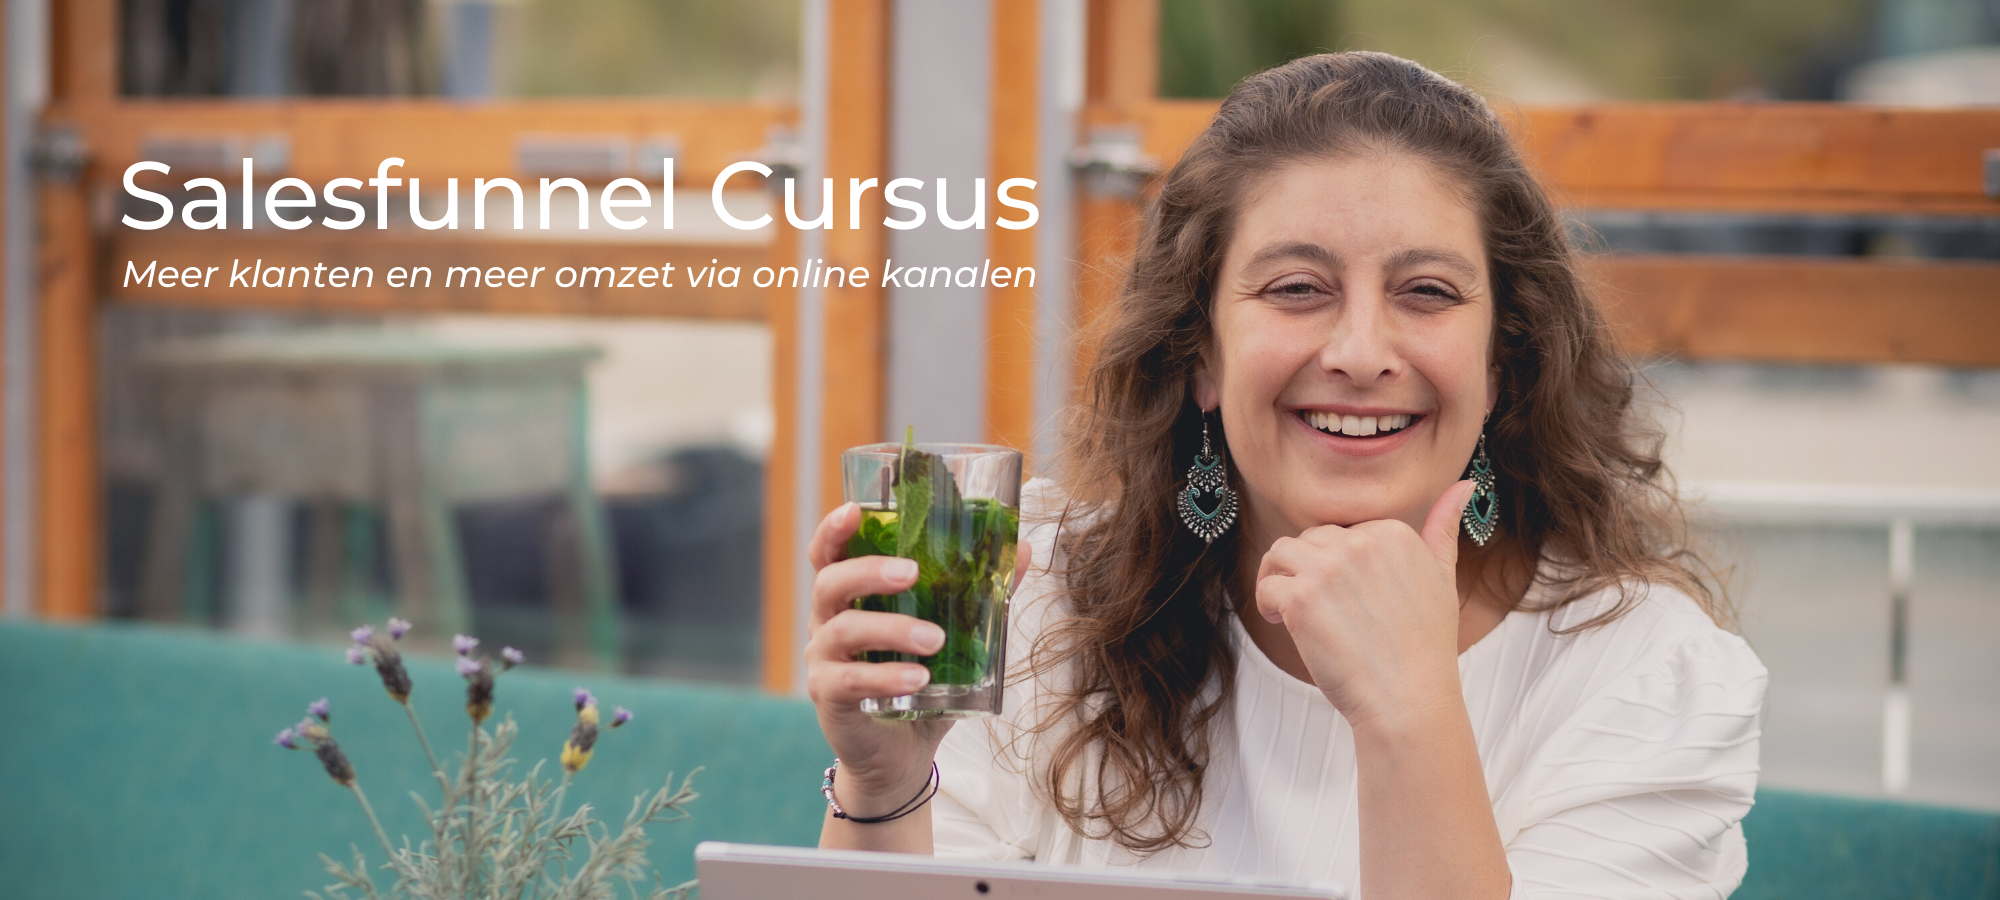 Salesfunnel Cursus DIY